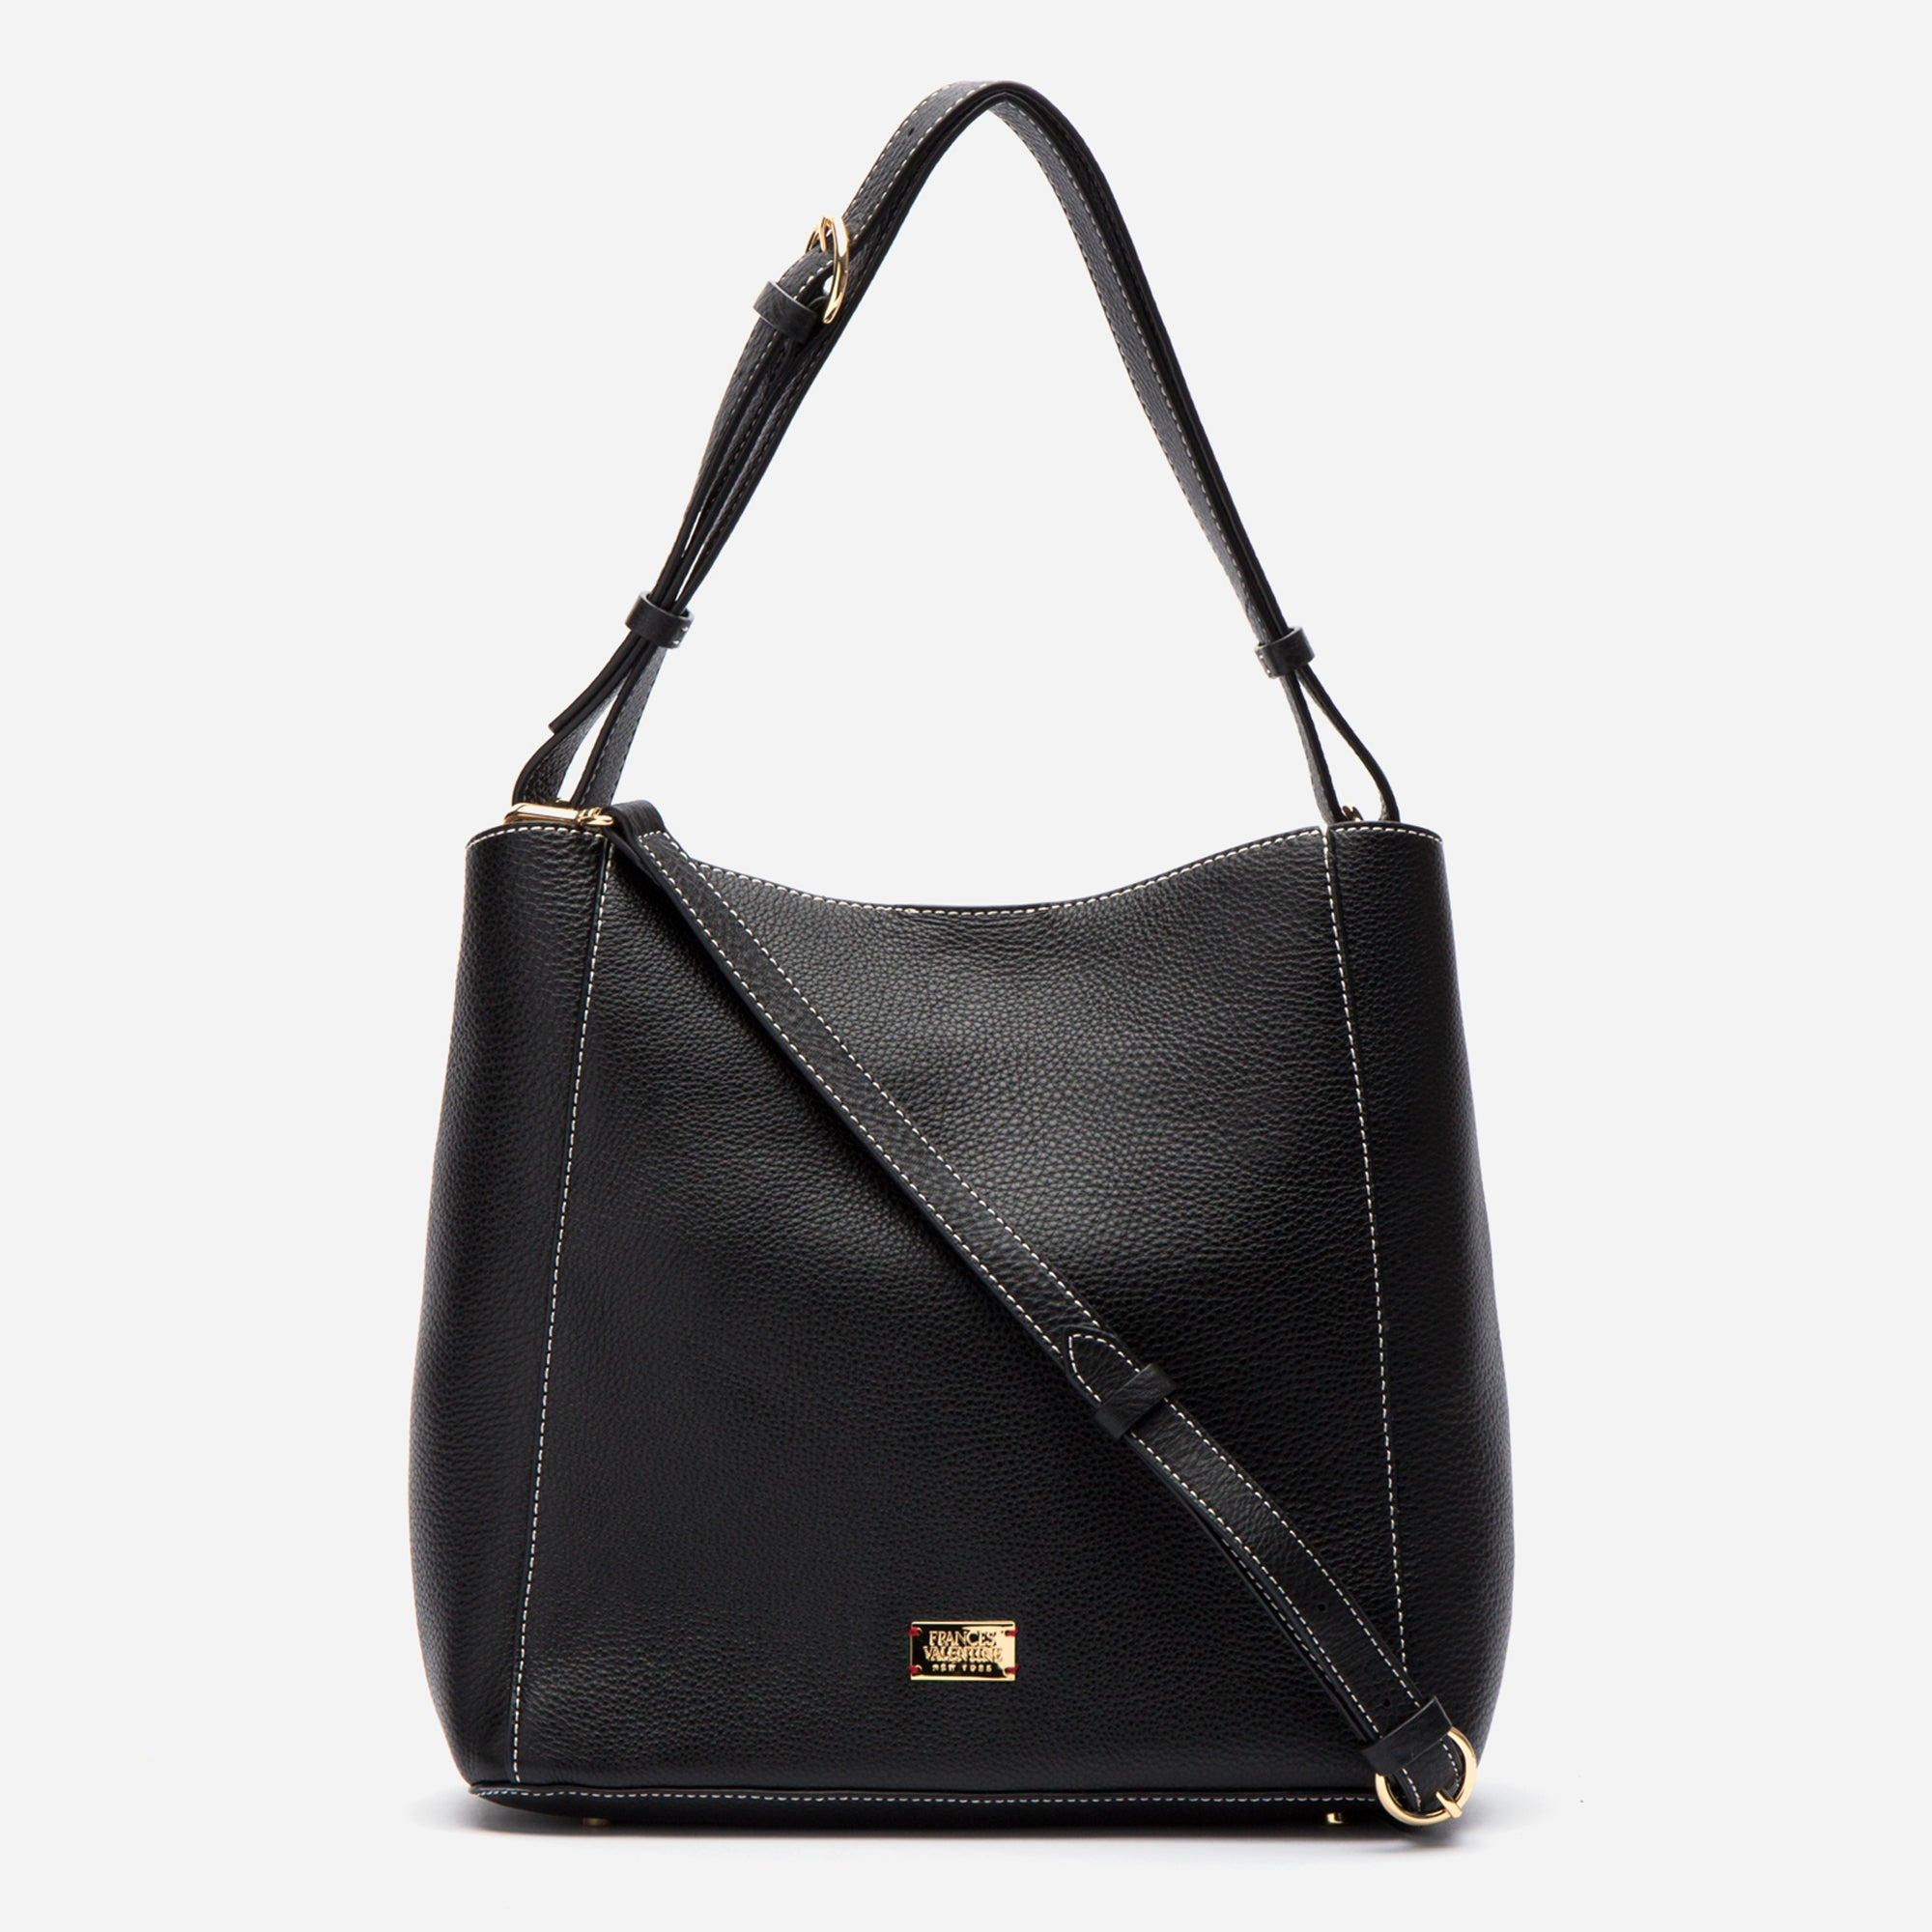 June Hobo Handbag Leather Black